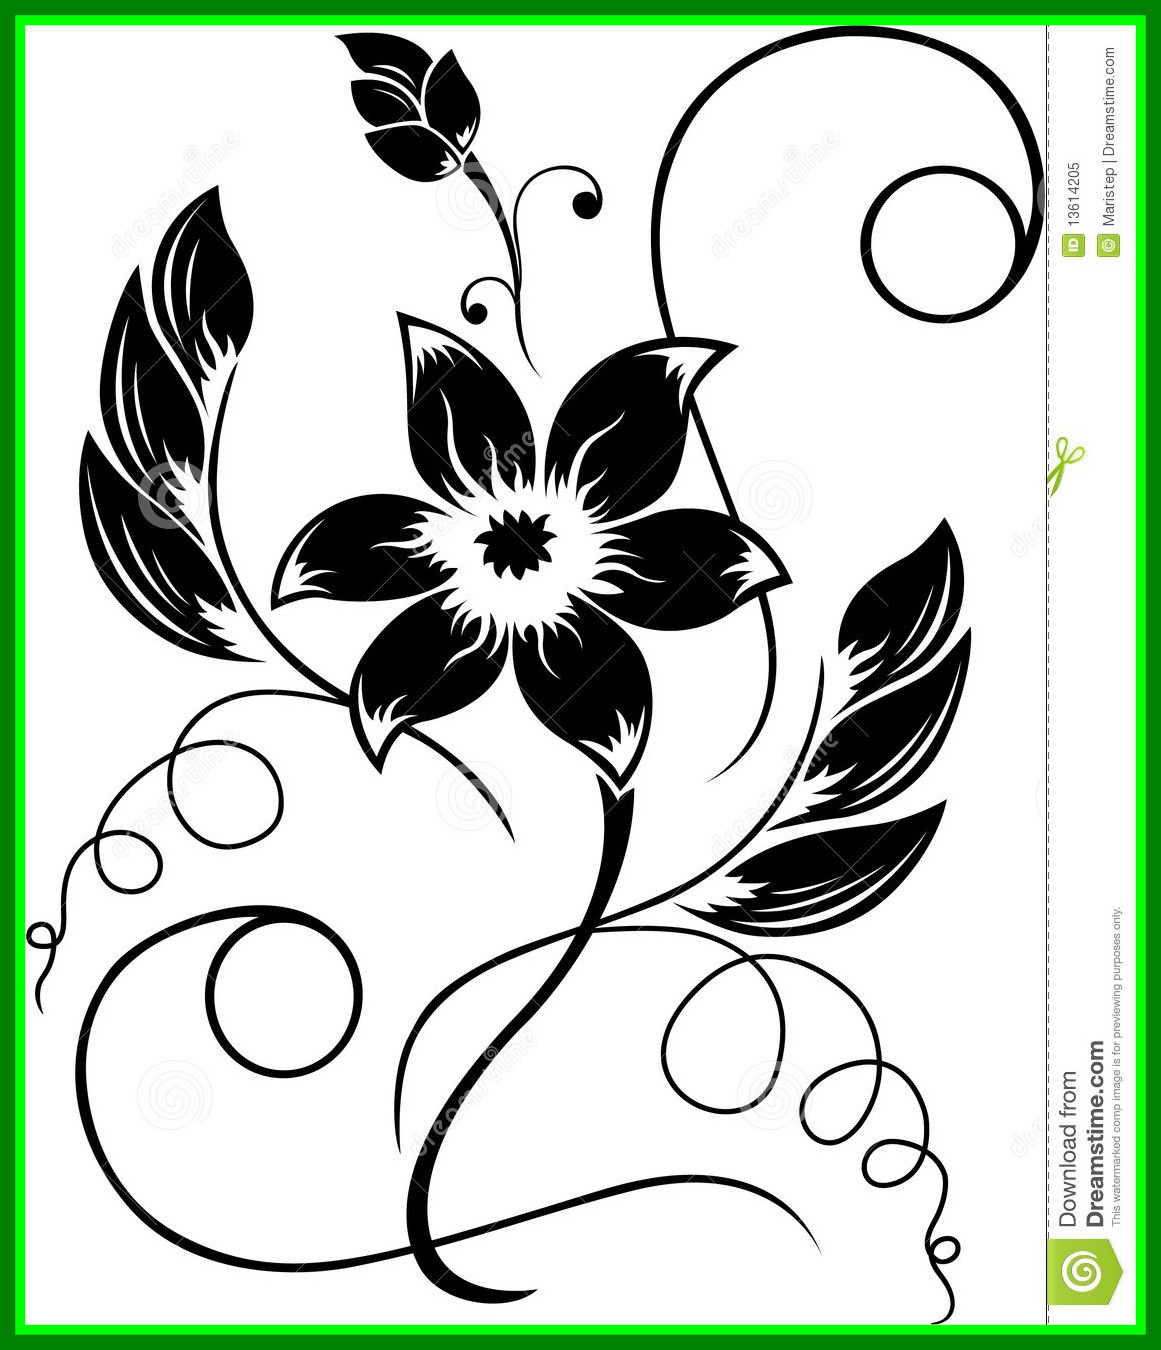 1161x1350 Best Black Rose White Flower Clipart Pict For Drawing Simple Ideas